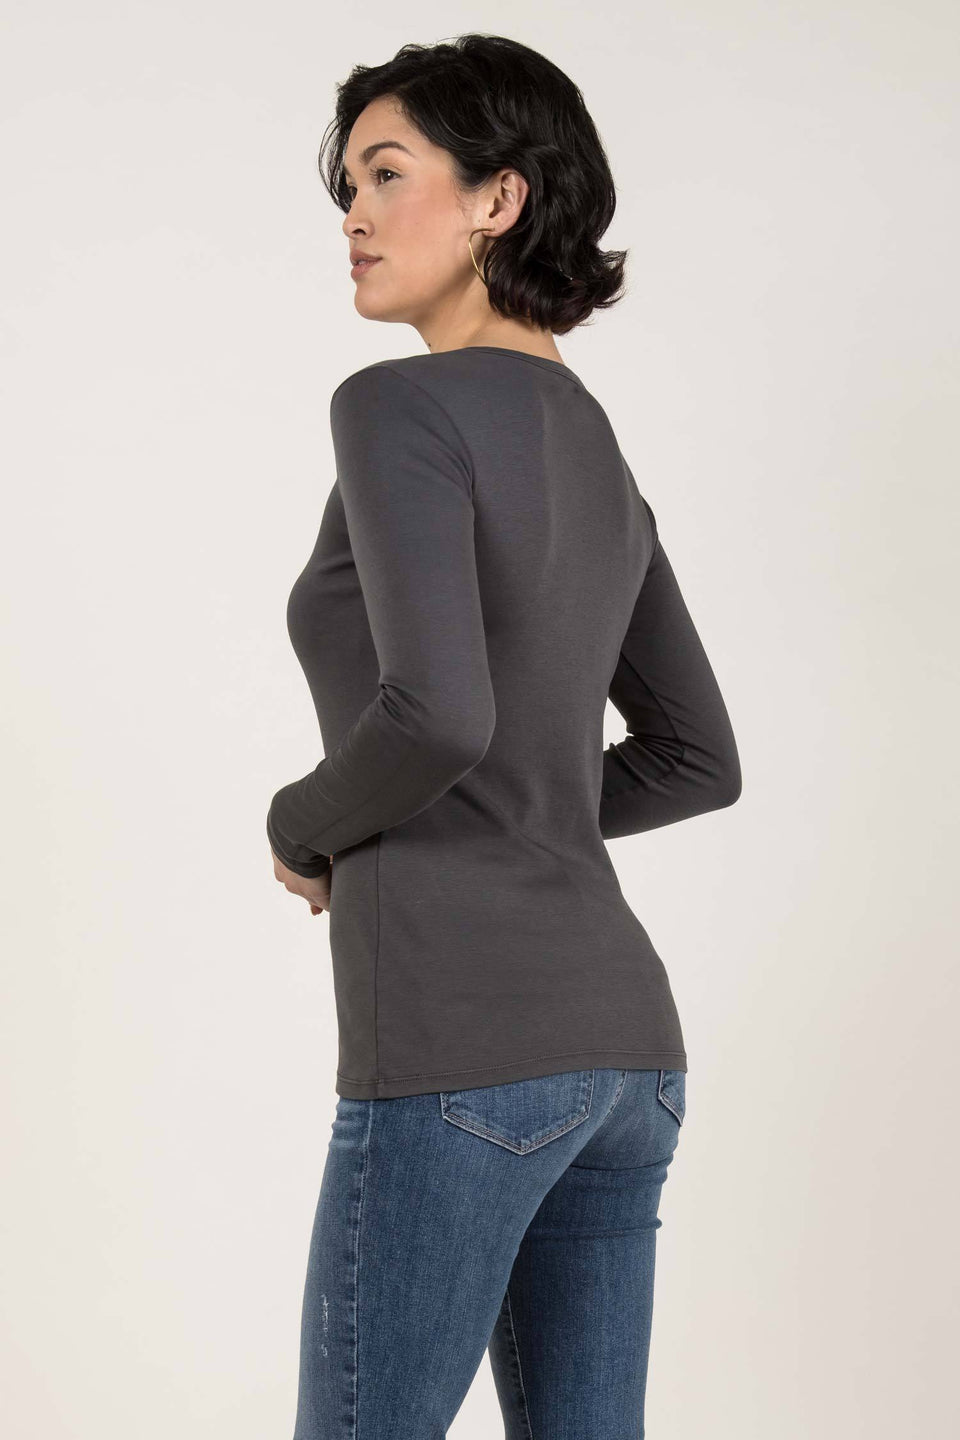 Essential Long Sleeve Scoop Tee in Charcoal